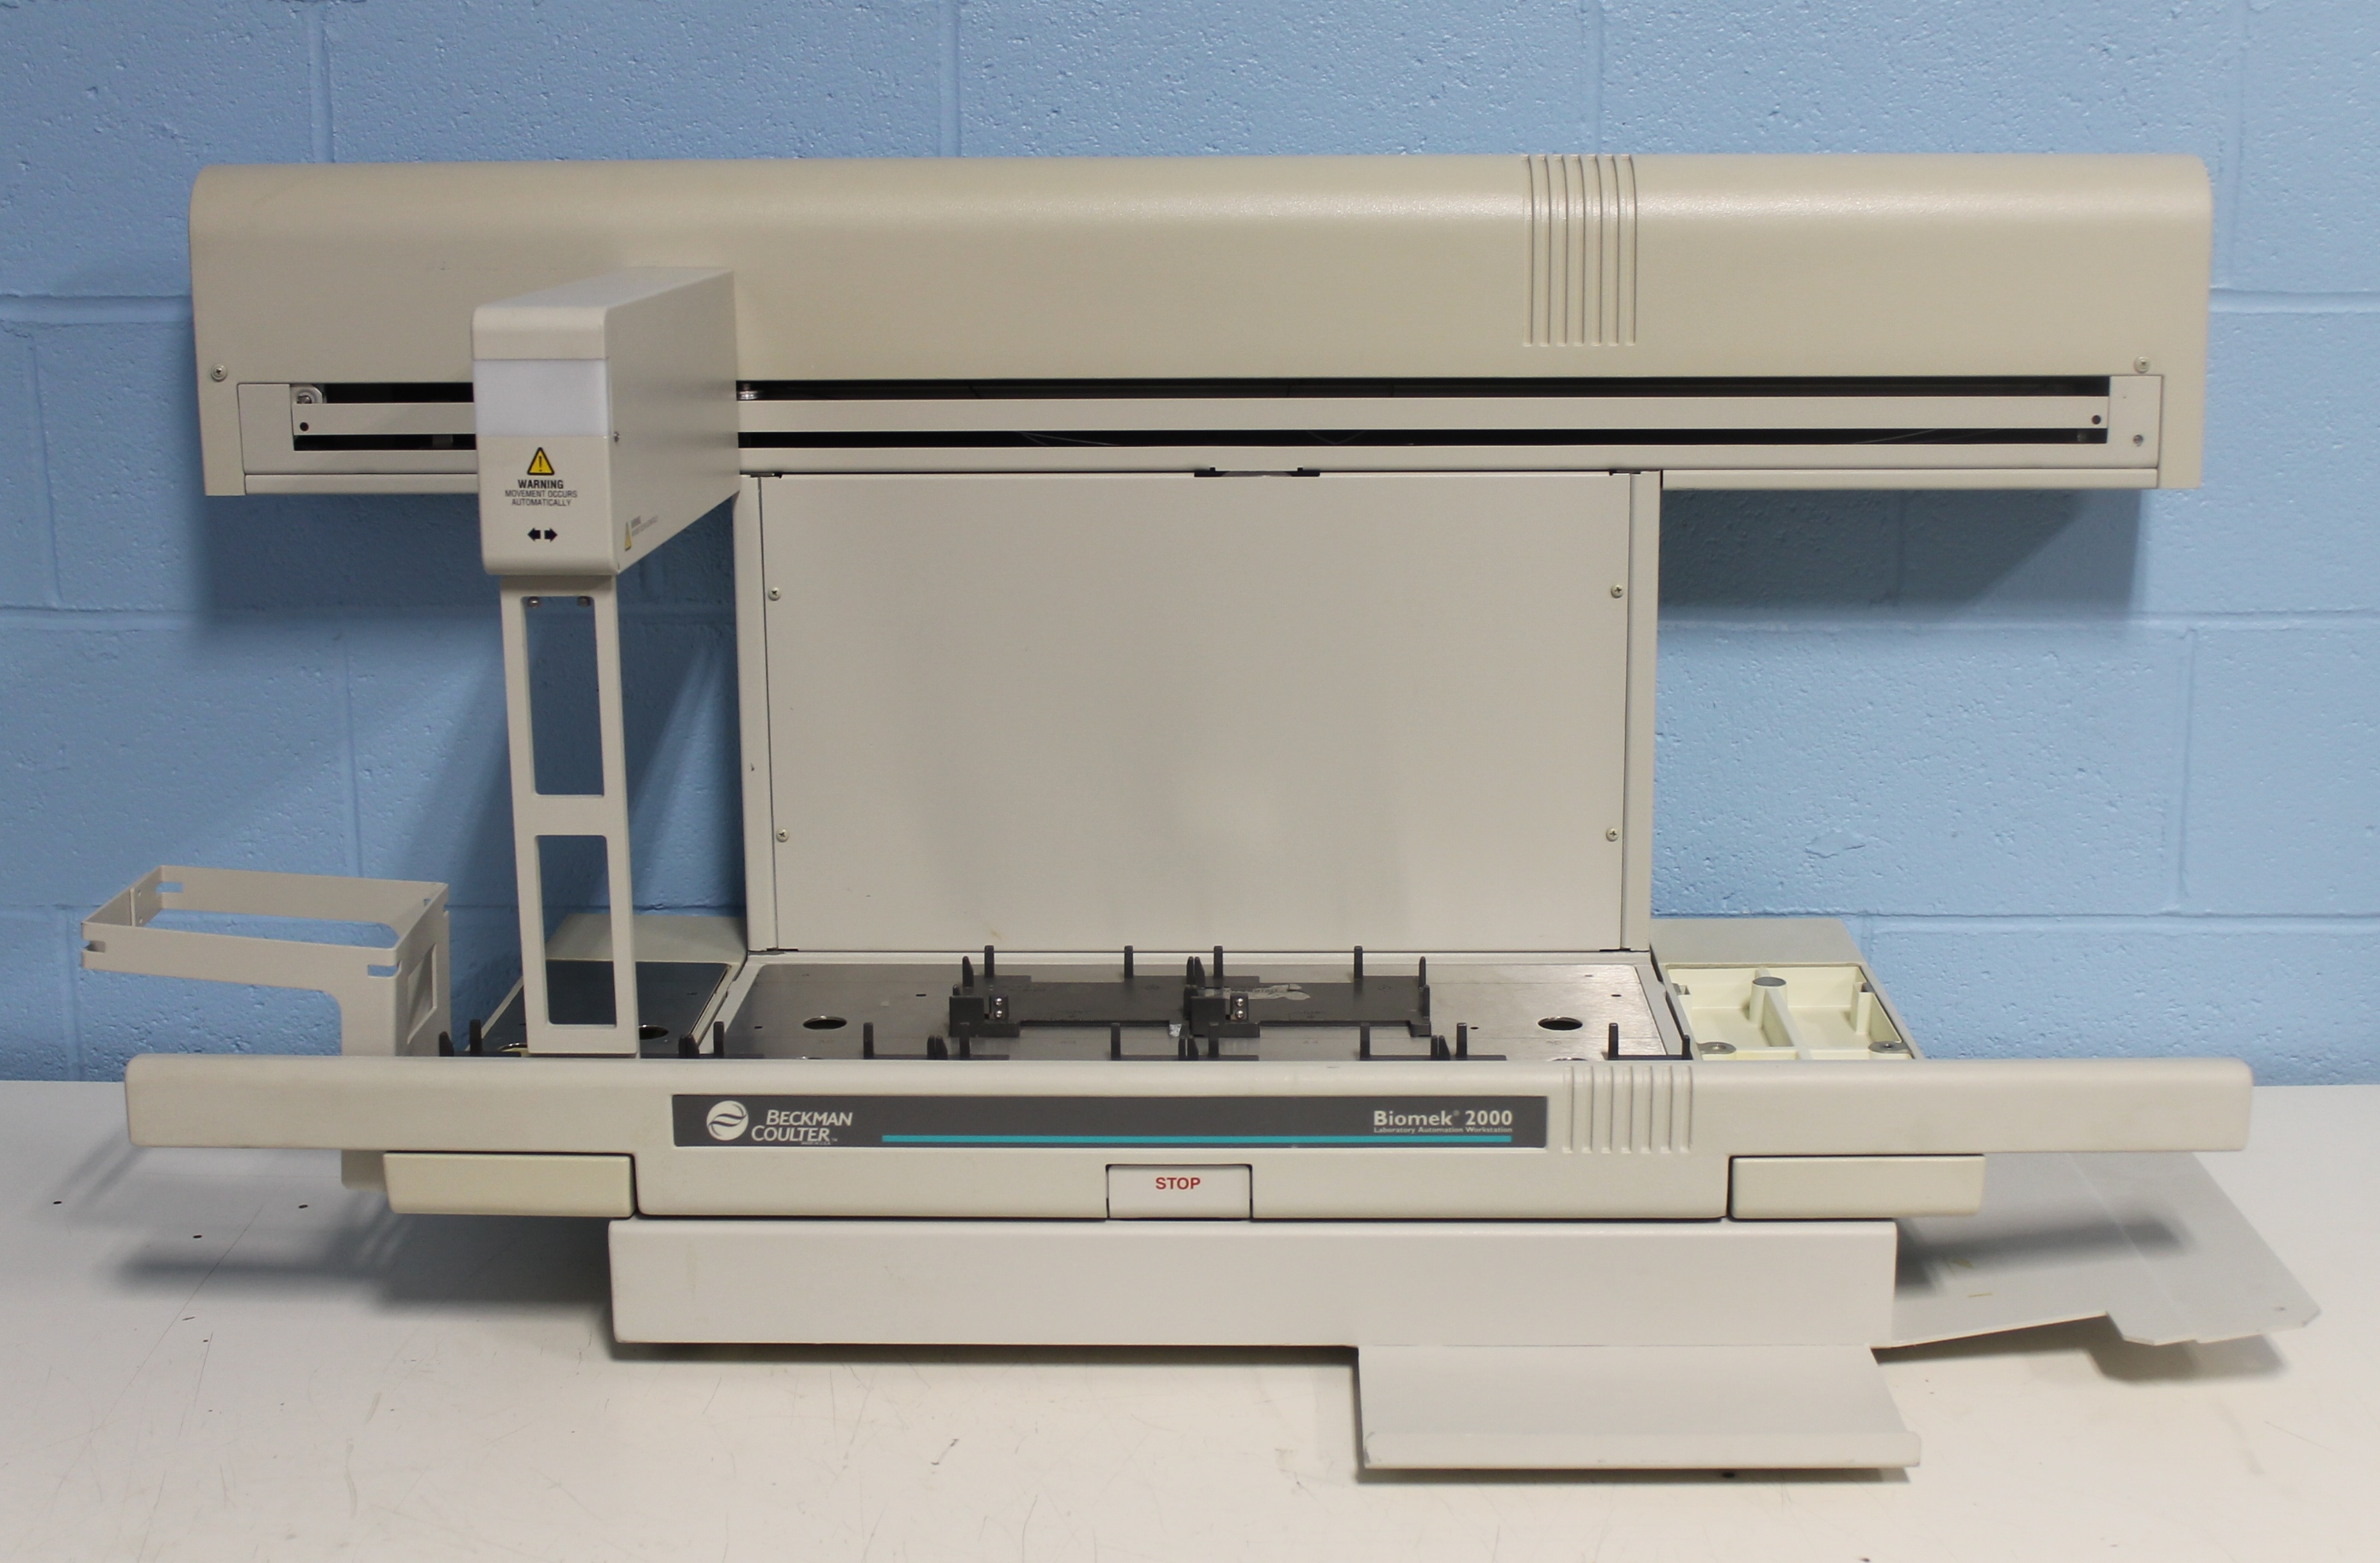 Beckman Coulter Biomek 2000 Laboratory Automation Workstation Image